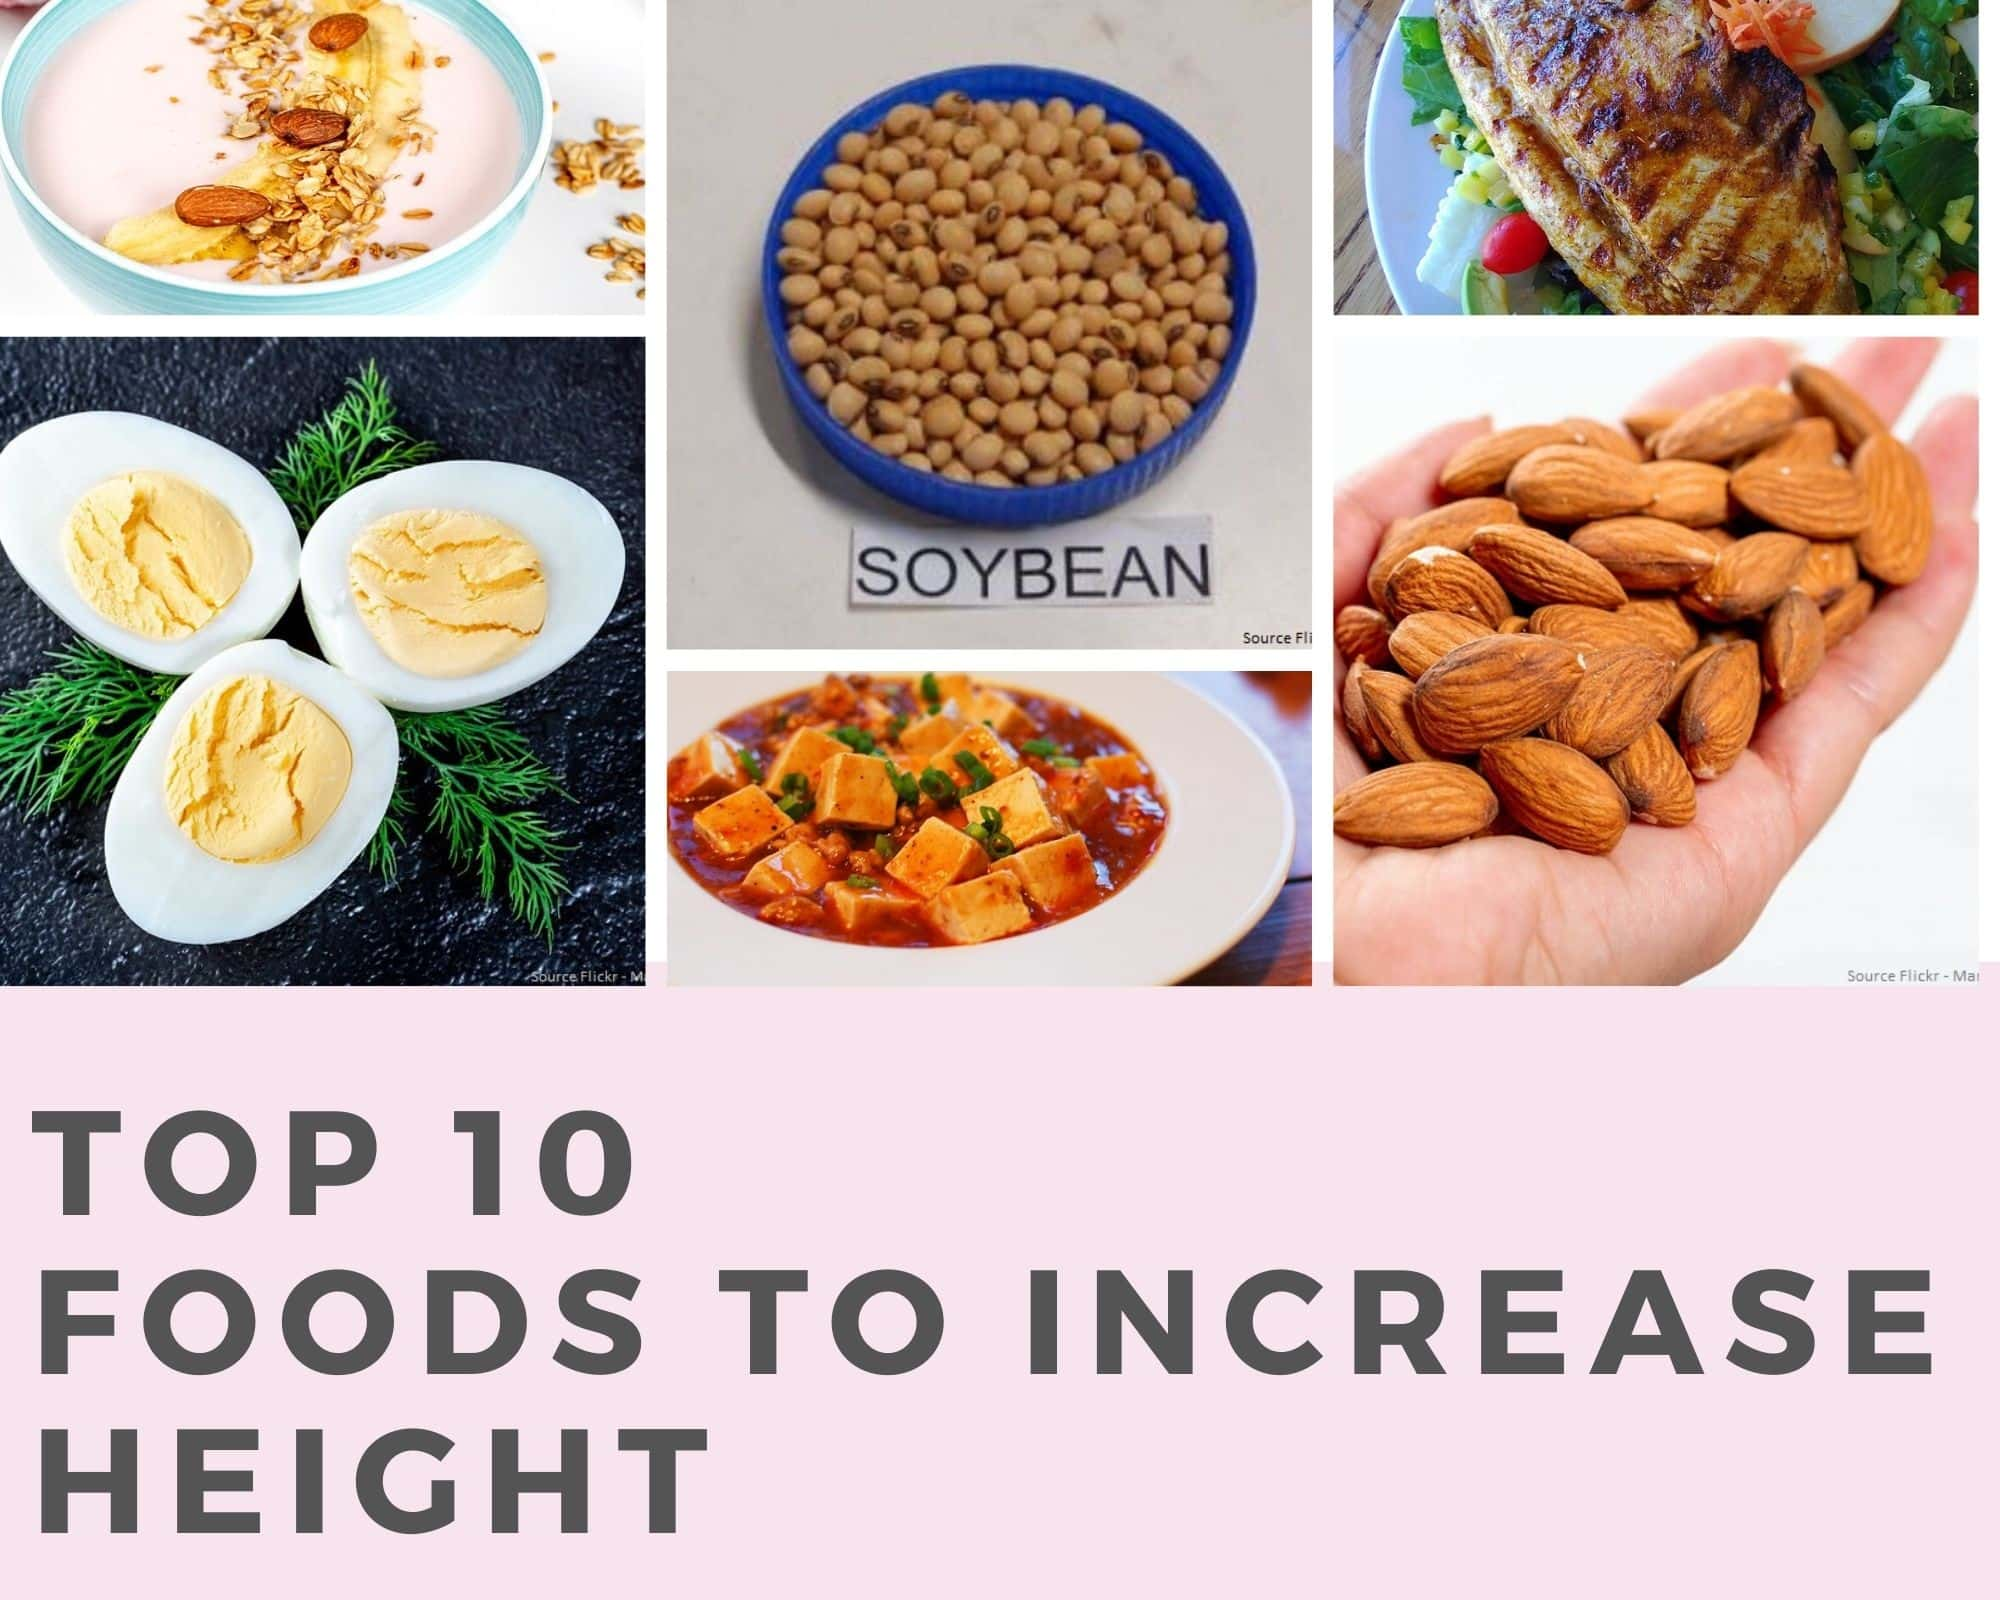 Top 10 Foods to Increase Height